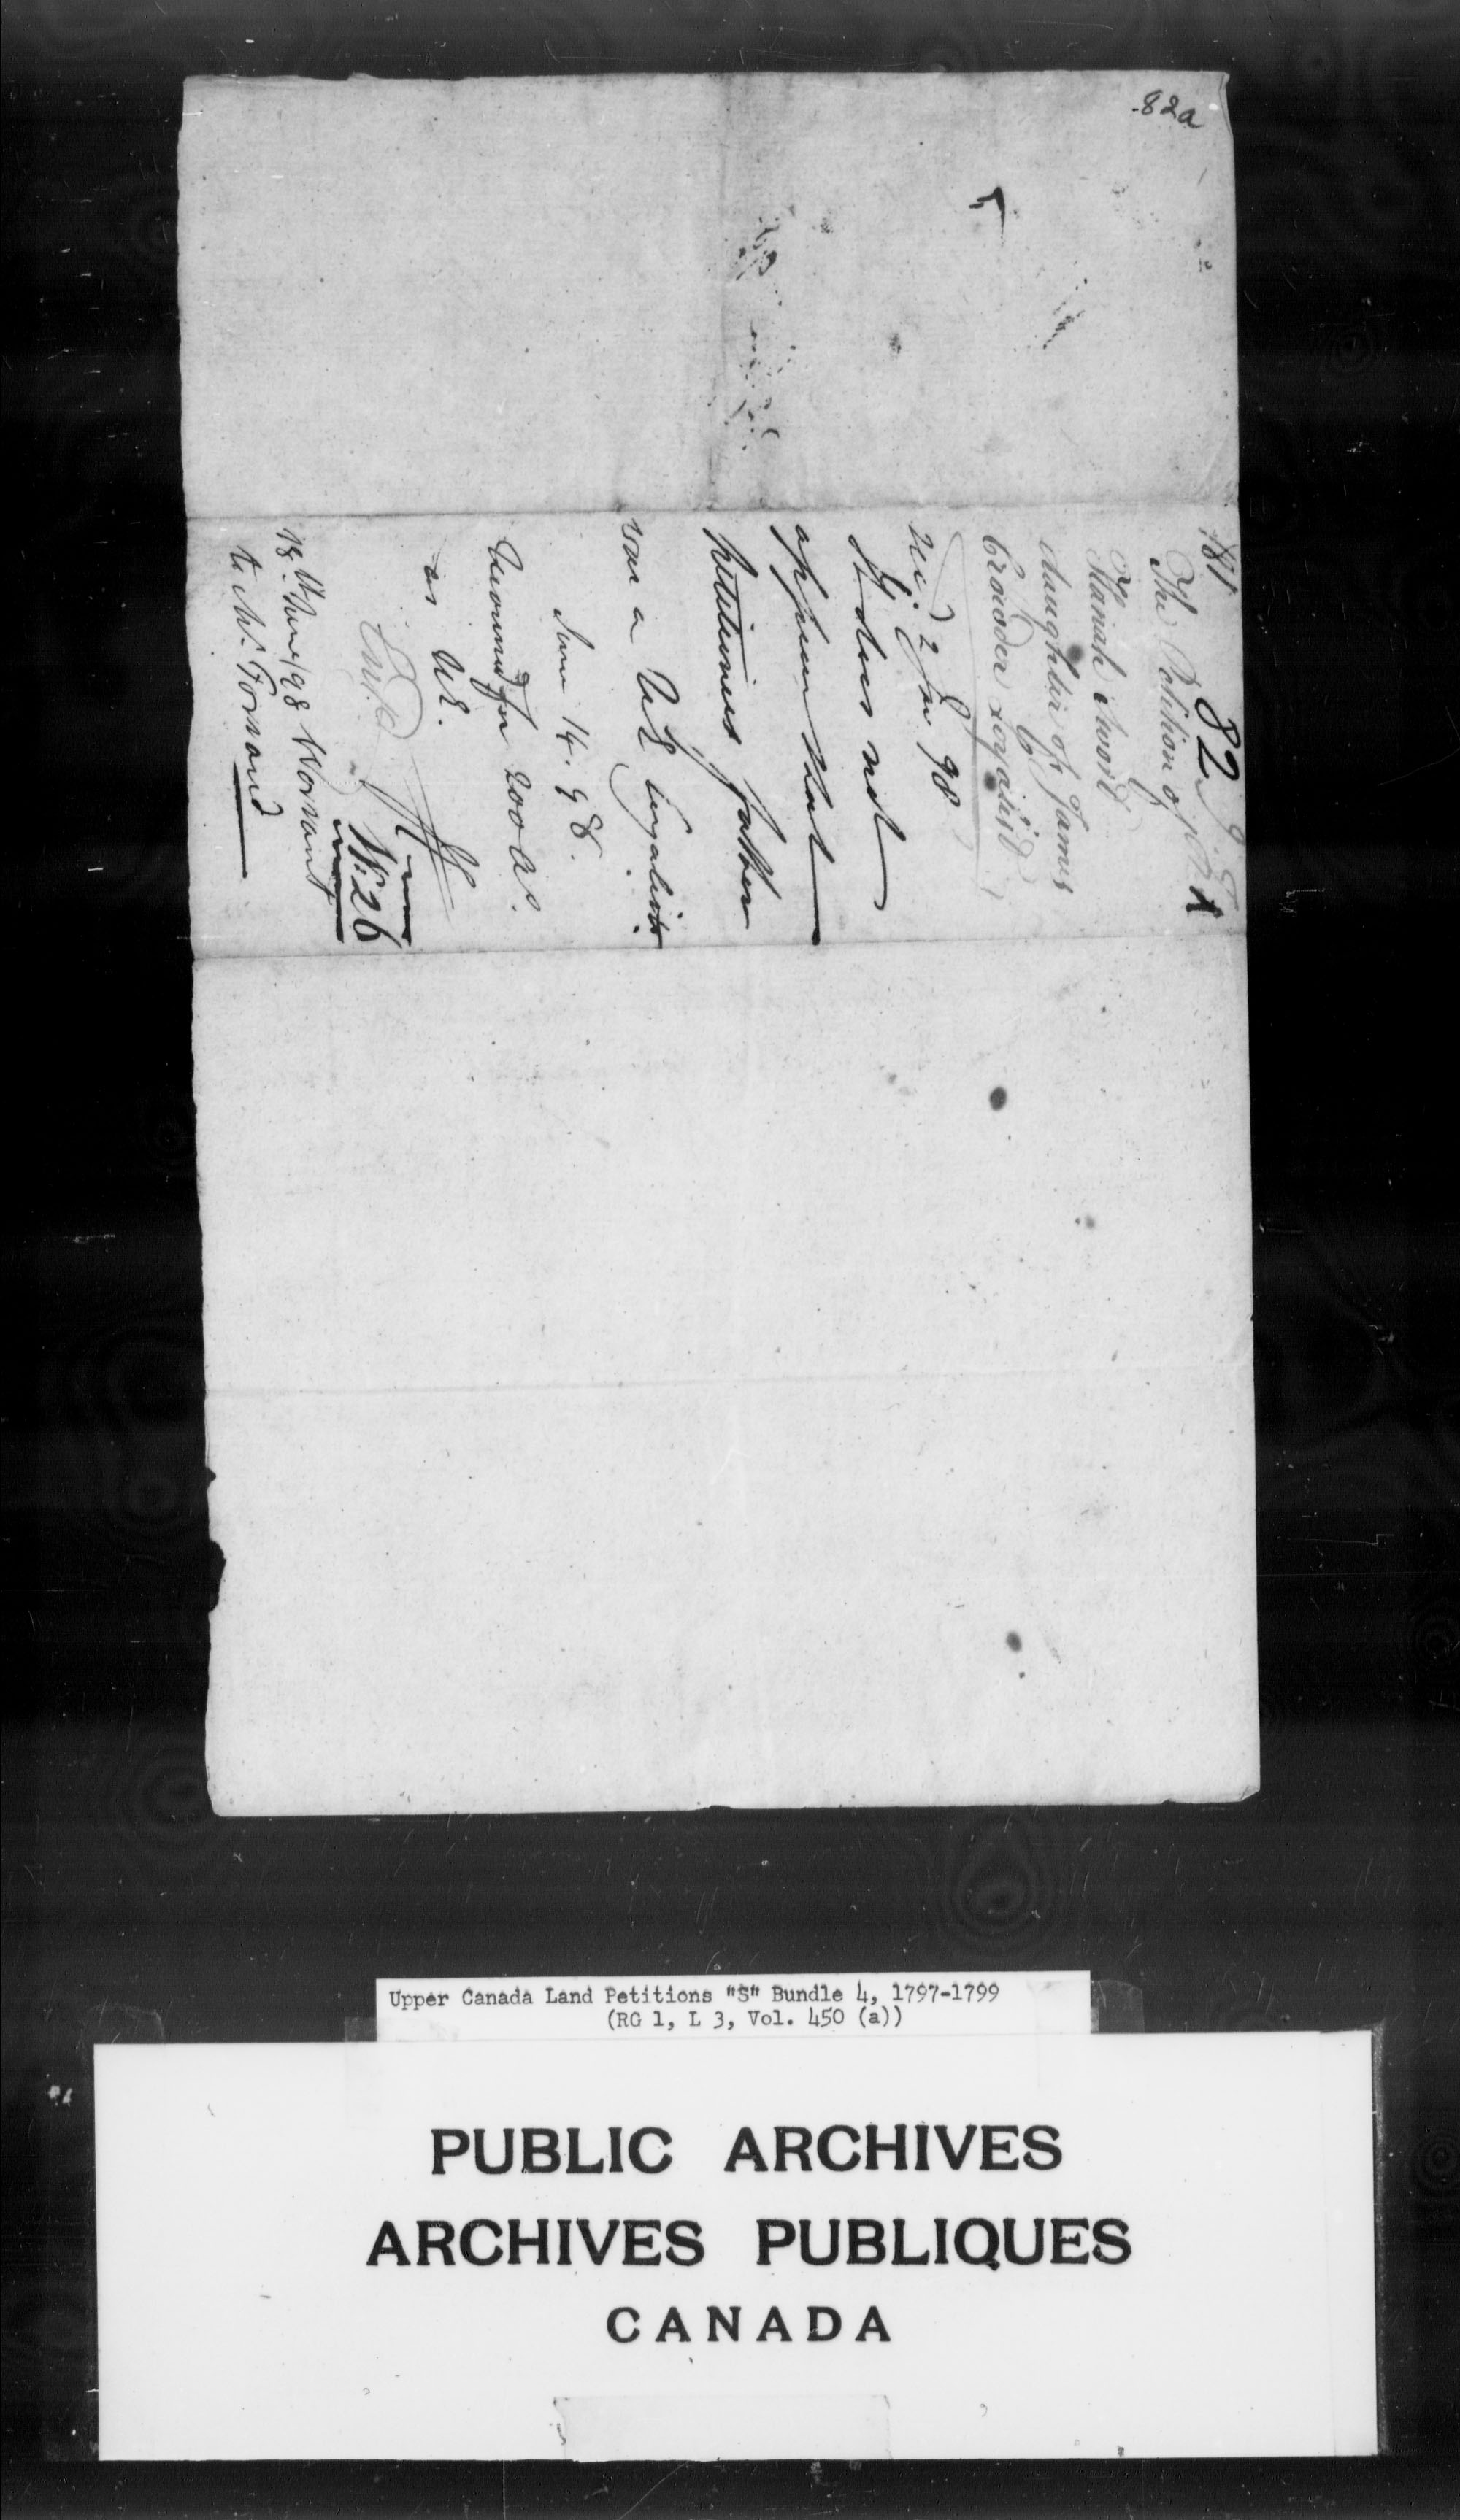 Title: Upper Canada Land Petitions (1763-1865) - Mikan Number: 205131 - Microform: c-2807